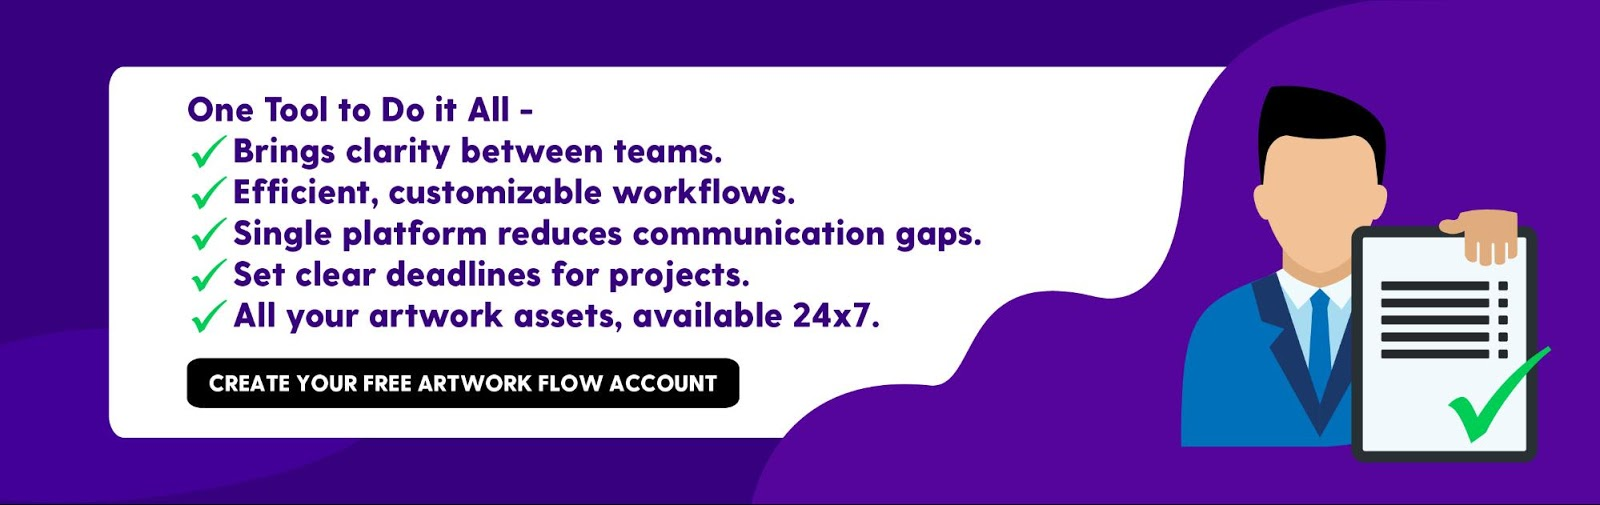 One Tool to Do it All[Y] Brings clarity between teams.[Y] Efficient, customizable workflows.[Y] Single platform reduces communication gaps.[Y] Set clear deadlines for projects.[Y] All your artwork assets, available 24x7.https://artwork.bizongo.com/sign-up